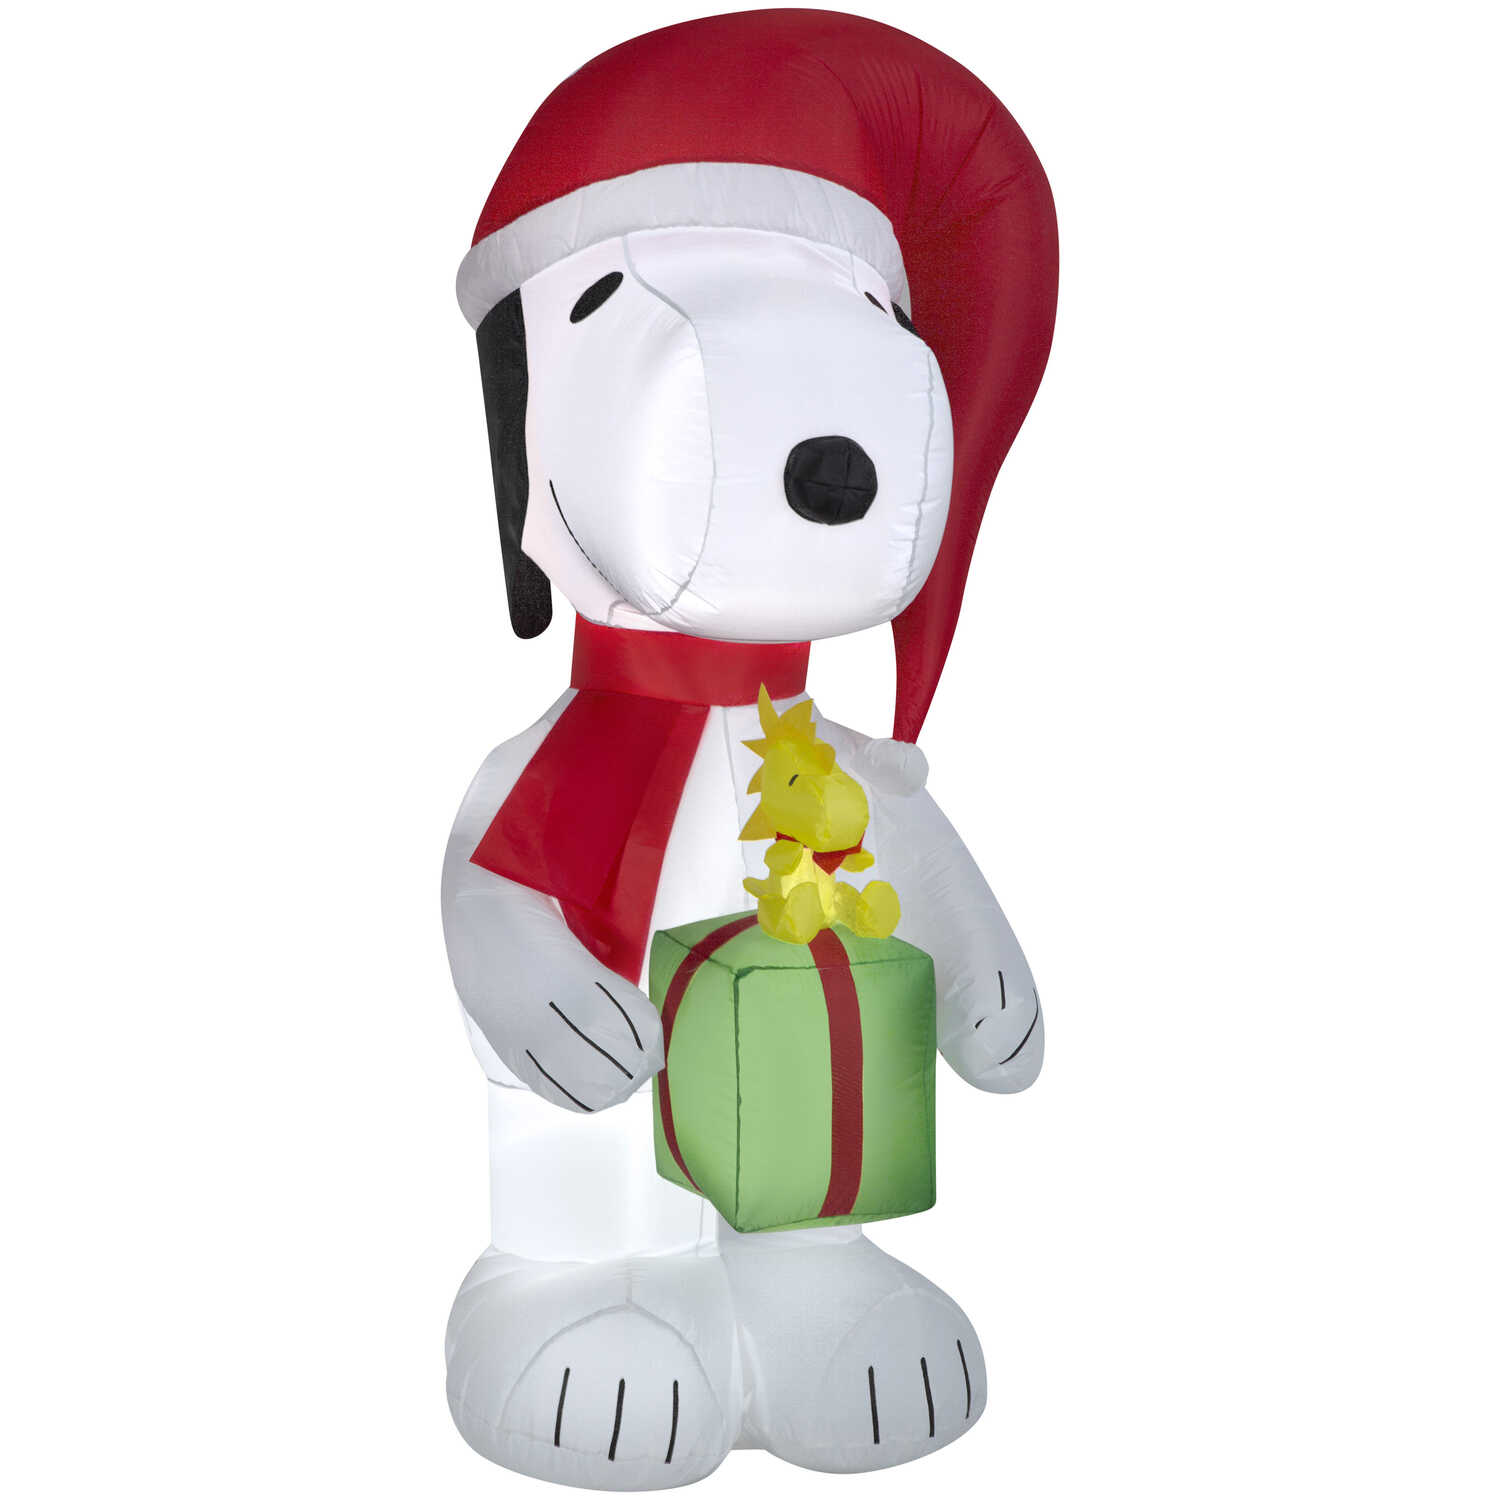 Gemmy  Airblown  Snoopy with Present  Christmas Inflatable  White  Fabric  1 pk